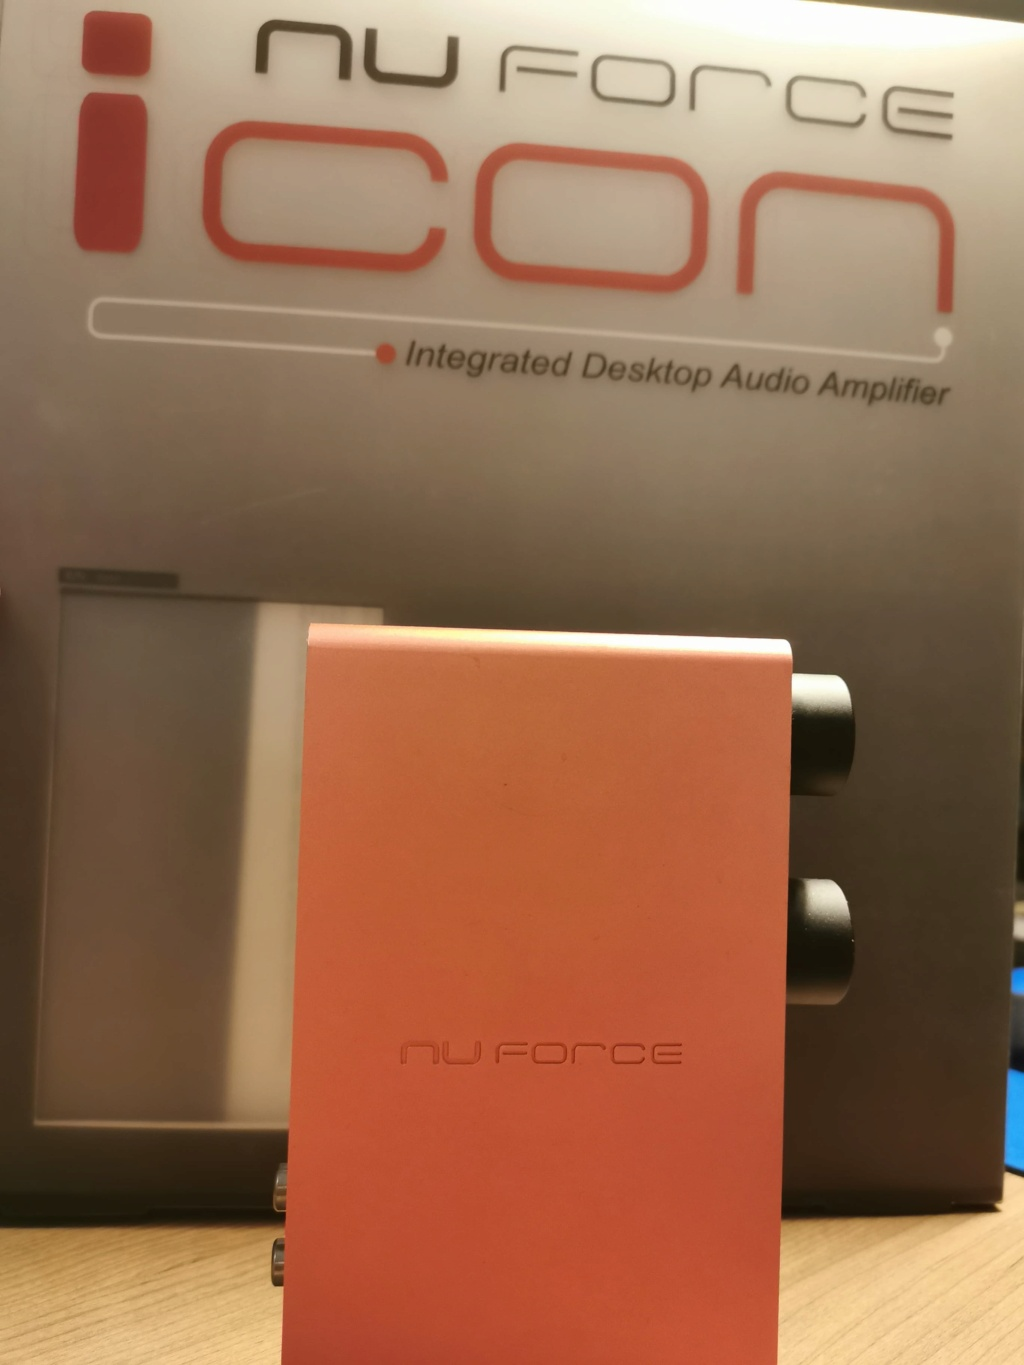 nuForce Icon Desktop Amp/Preamp + USB DAC (USED) Nf110